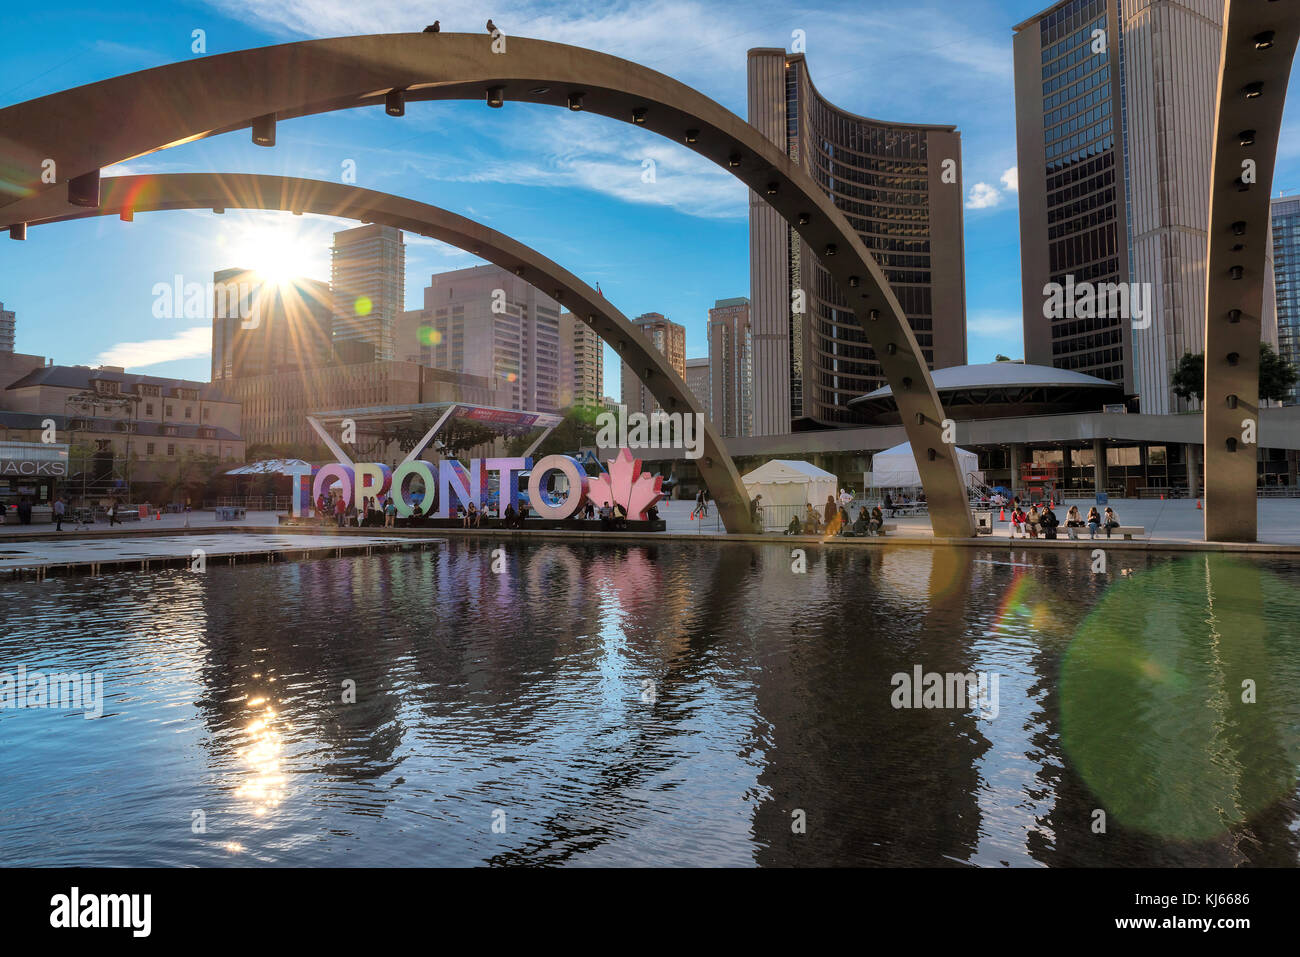 Toronto city hall and Toronto Sign in downtown at sunset - Stock Image